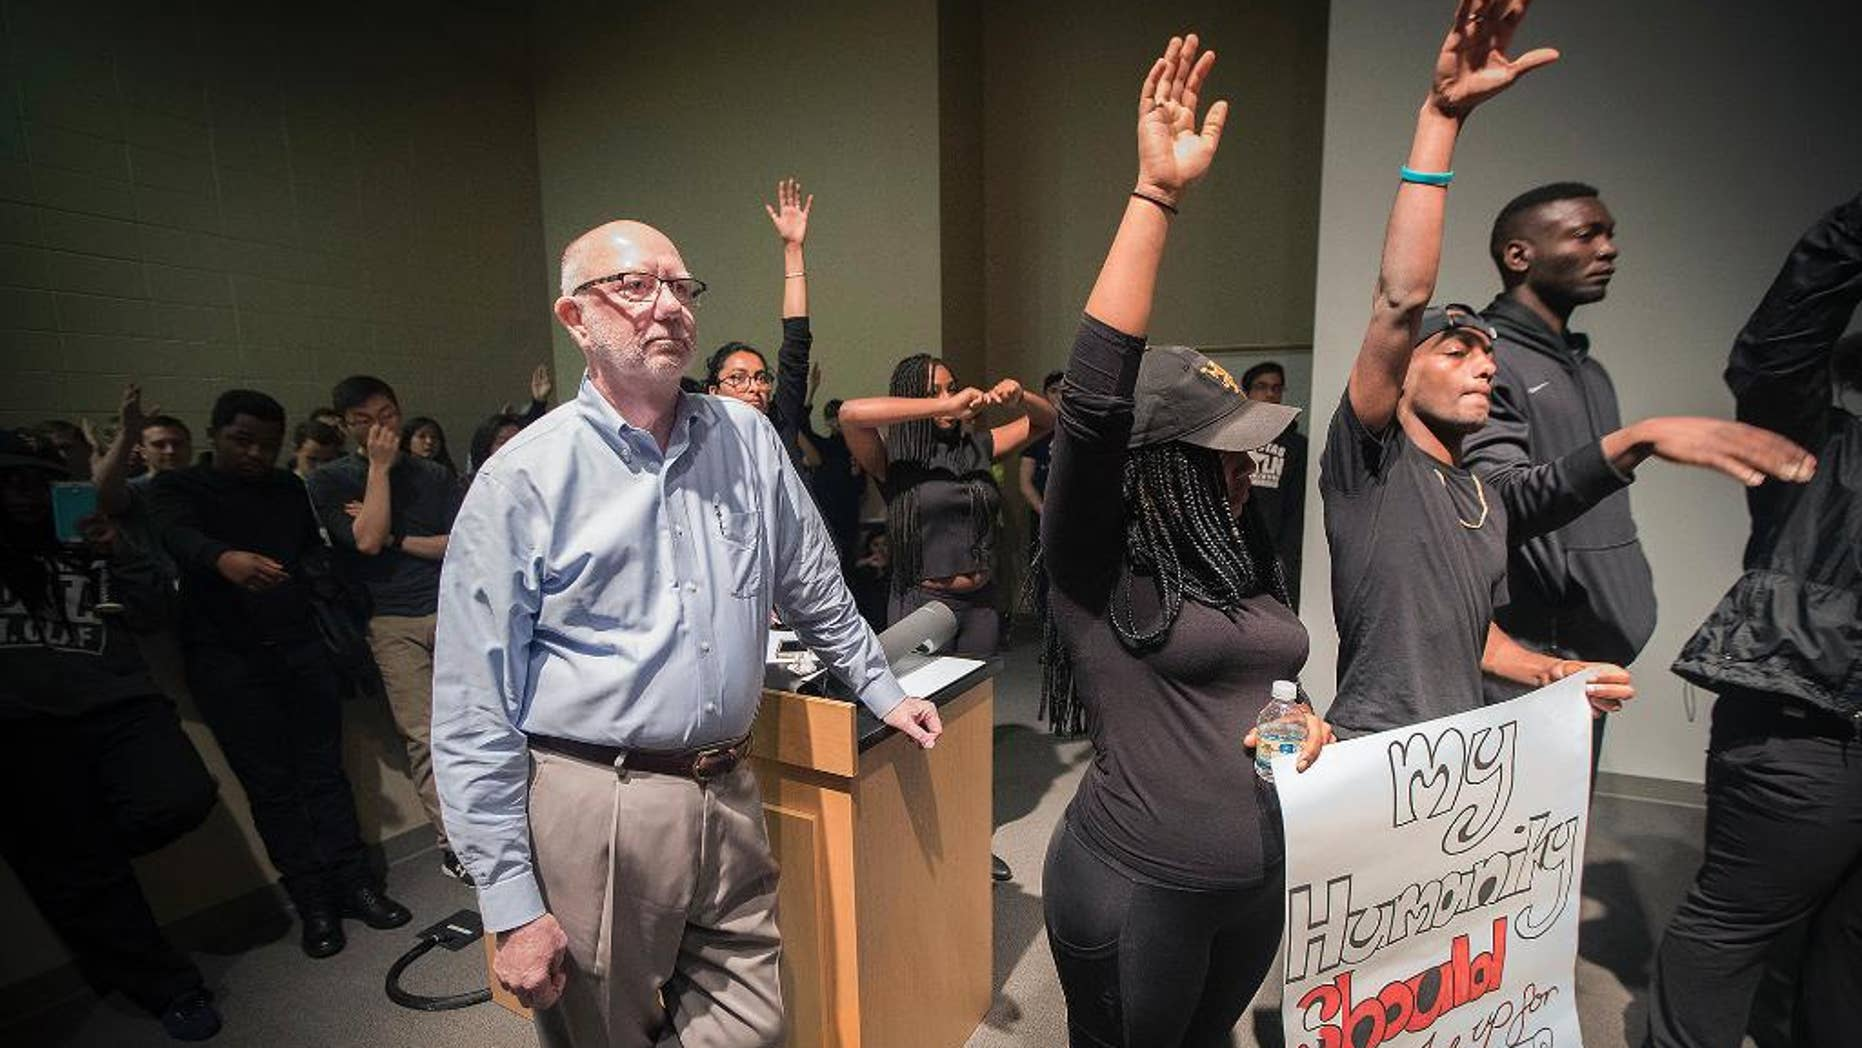 St. Olaf College President David R. Anderson is surrounded by student protesters in the Tomson Hall auditorium on campus in Northfield, Minn. May 1, 2017